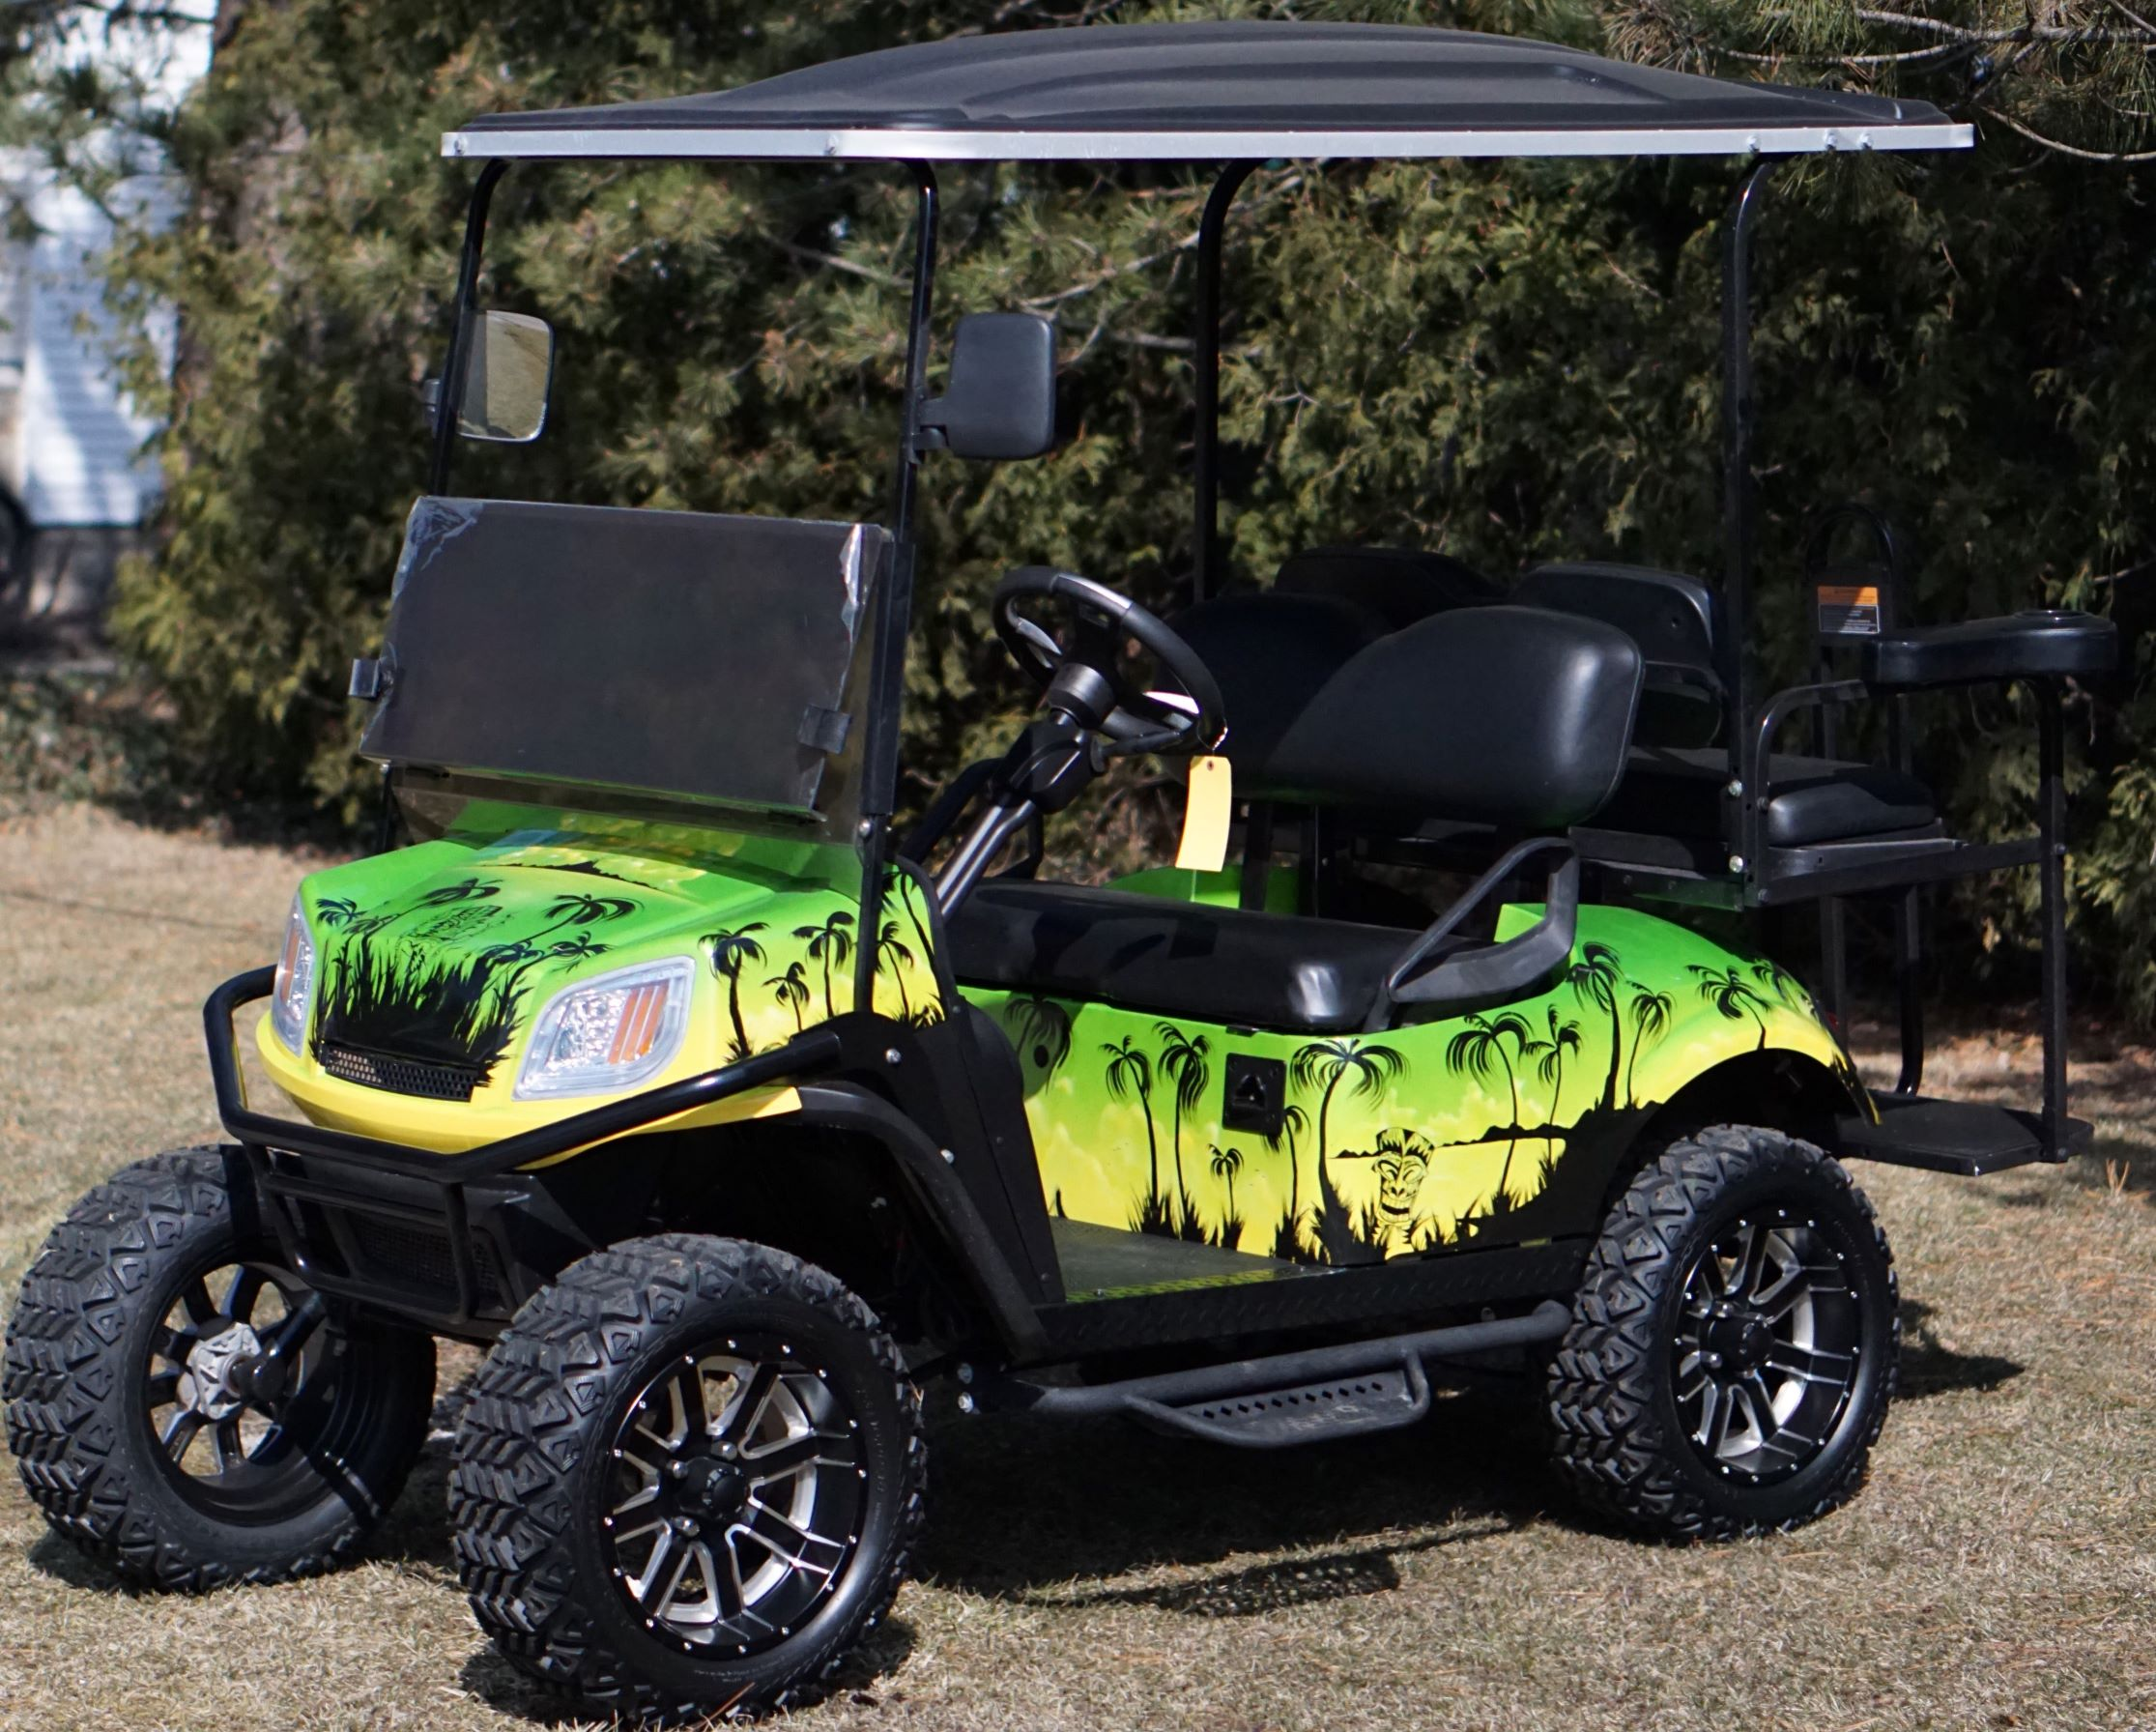 Michigan Golf Carts Is A Ezgo Dealer In Warren Mi 586 979 4940